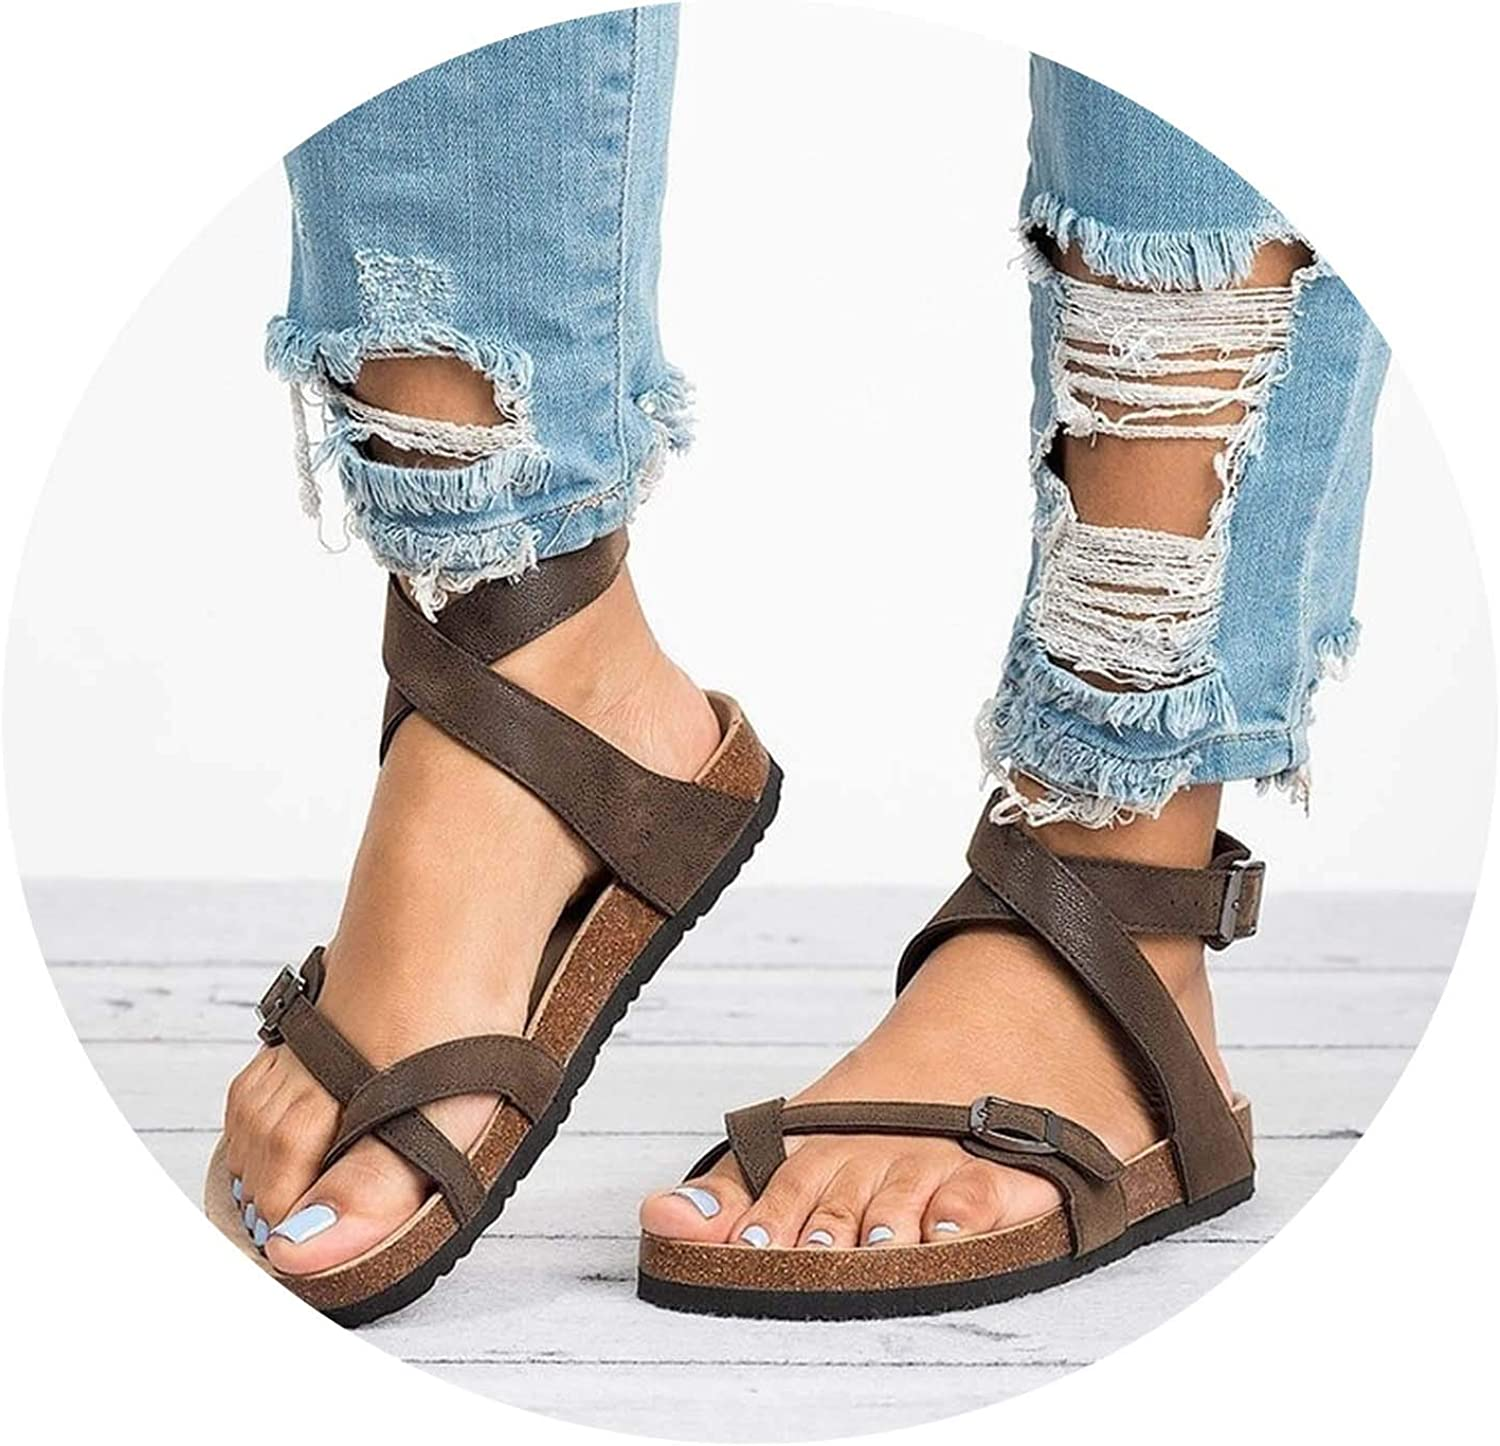 Women Sandals 2019 New Summer Leather Sandals Flip Flop Flat Sandals Casual Beach shoes Ladies 43,Brown,10